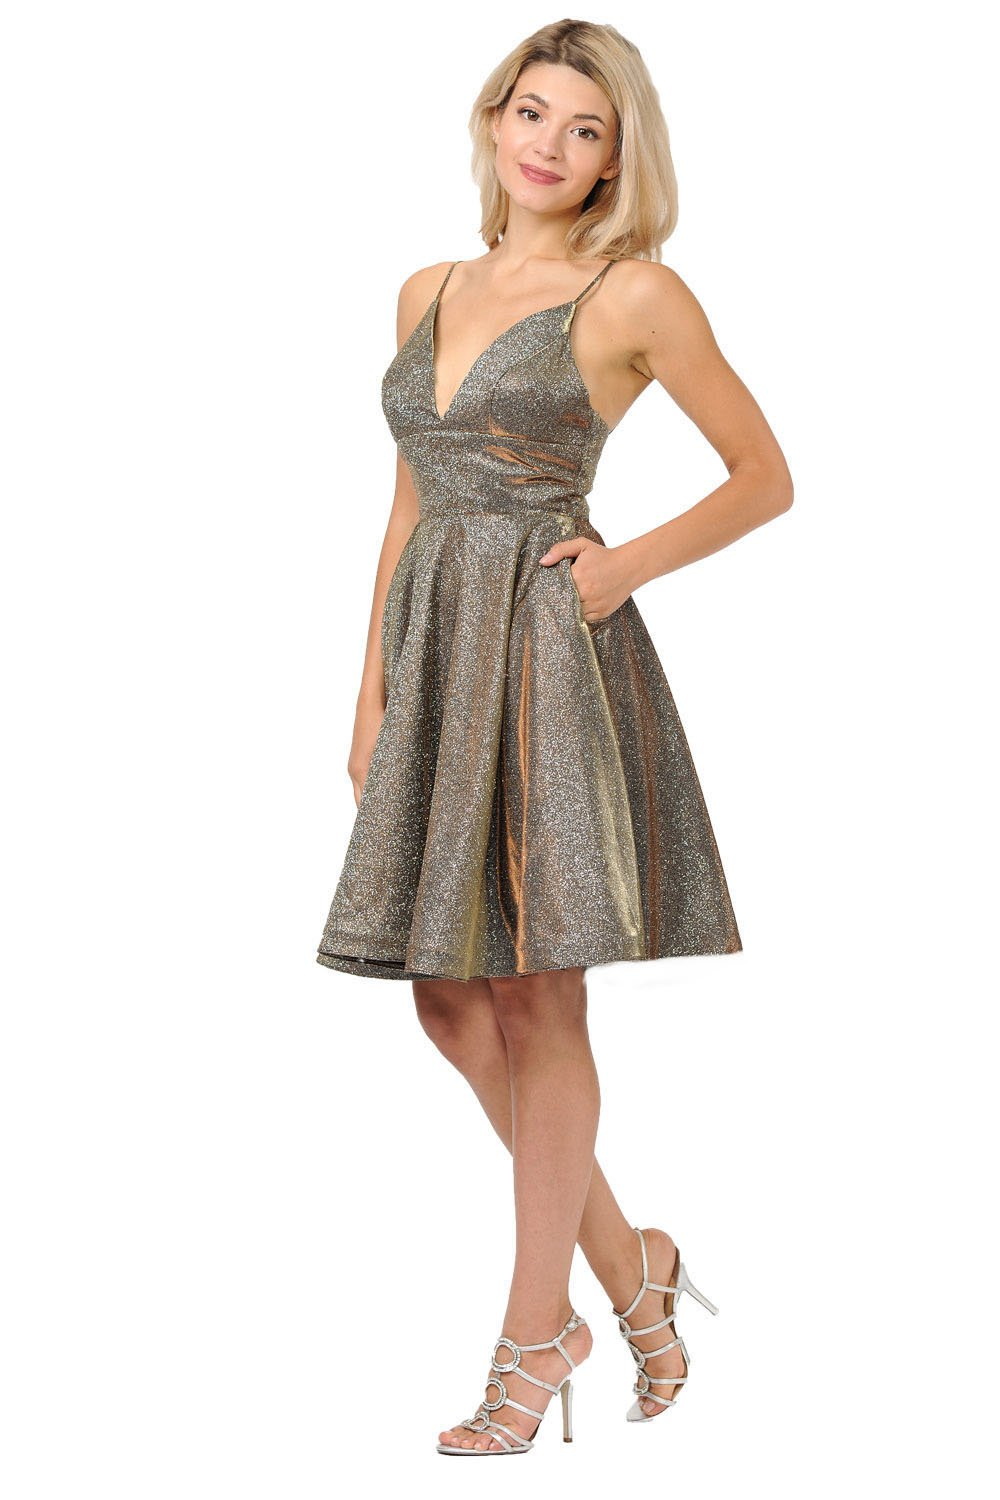 Gold metallic short dress with V-neckline and side pockets homecoming dress.